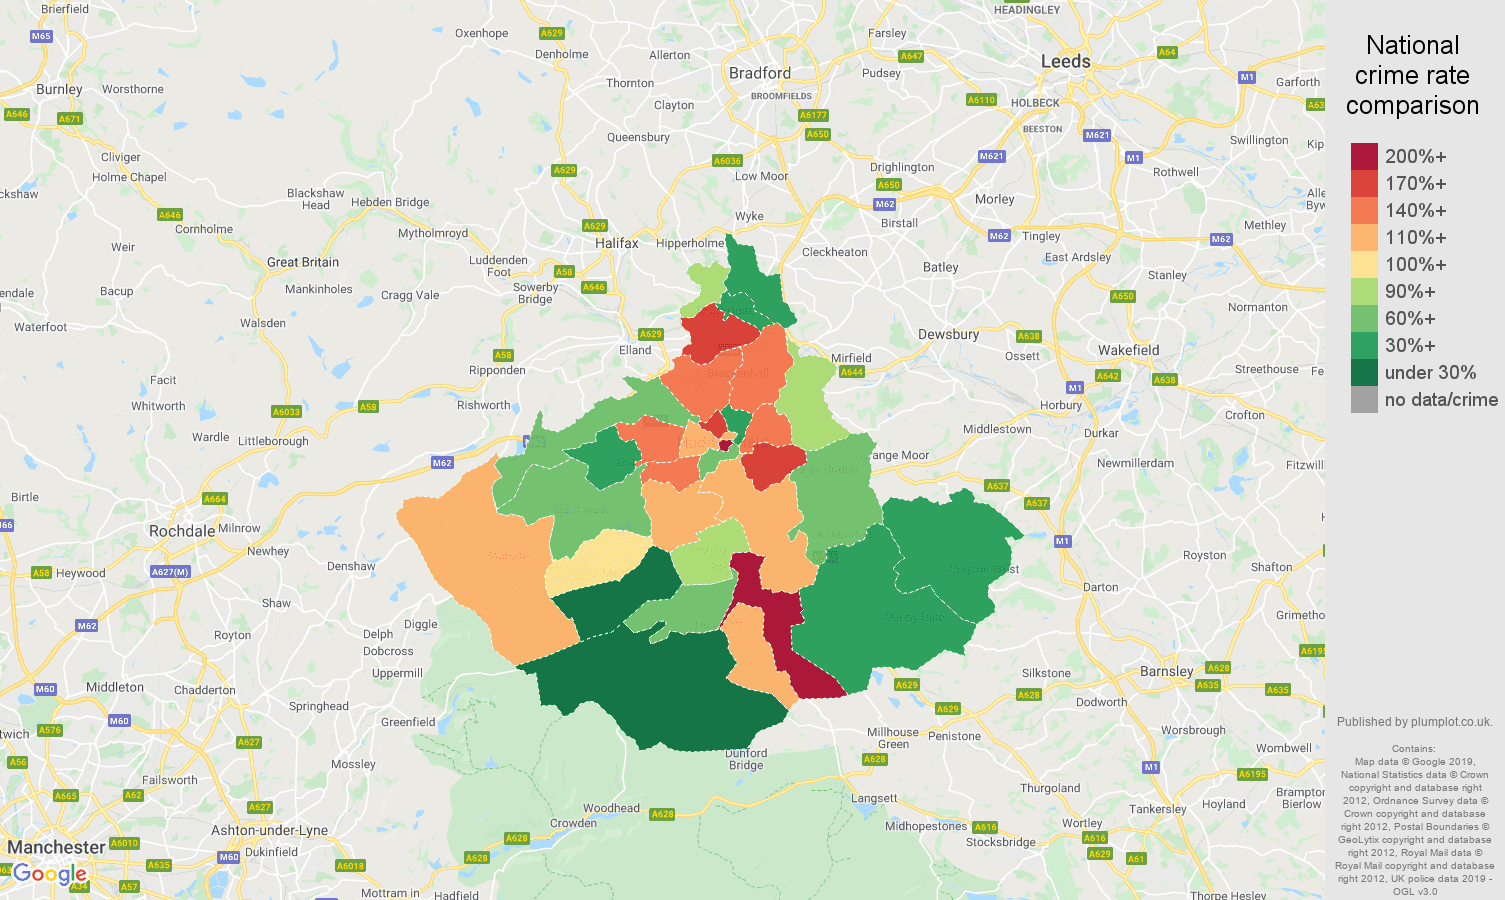 Huddersfield other crime rate comparison map